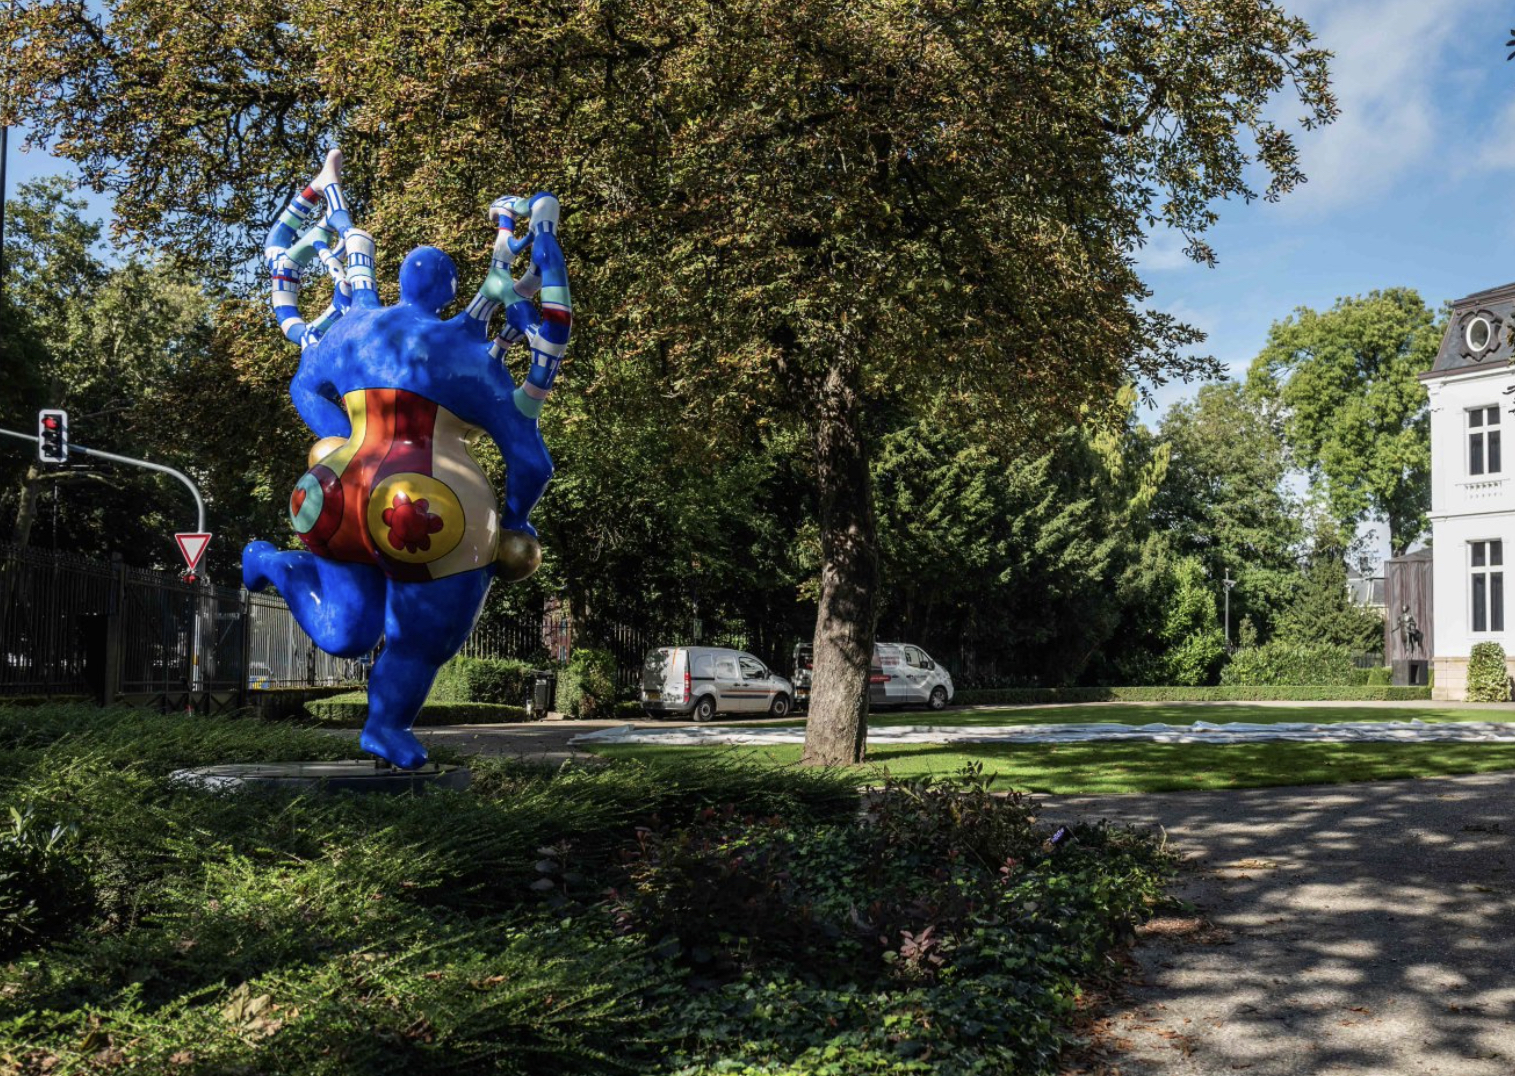 colorful painted polyester sculpture by Niki DE Saint Phalle in the shape of an angel installed in a lush green garden at Villa Vauban in Luxembourg